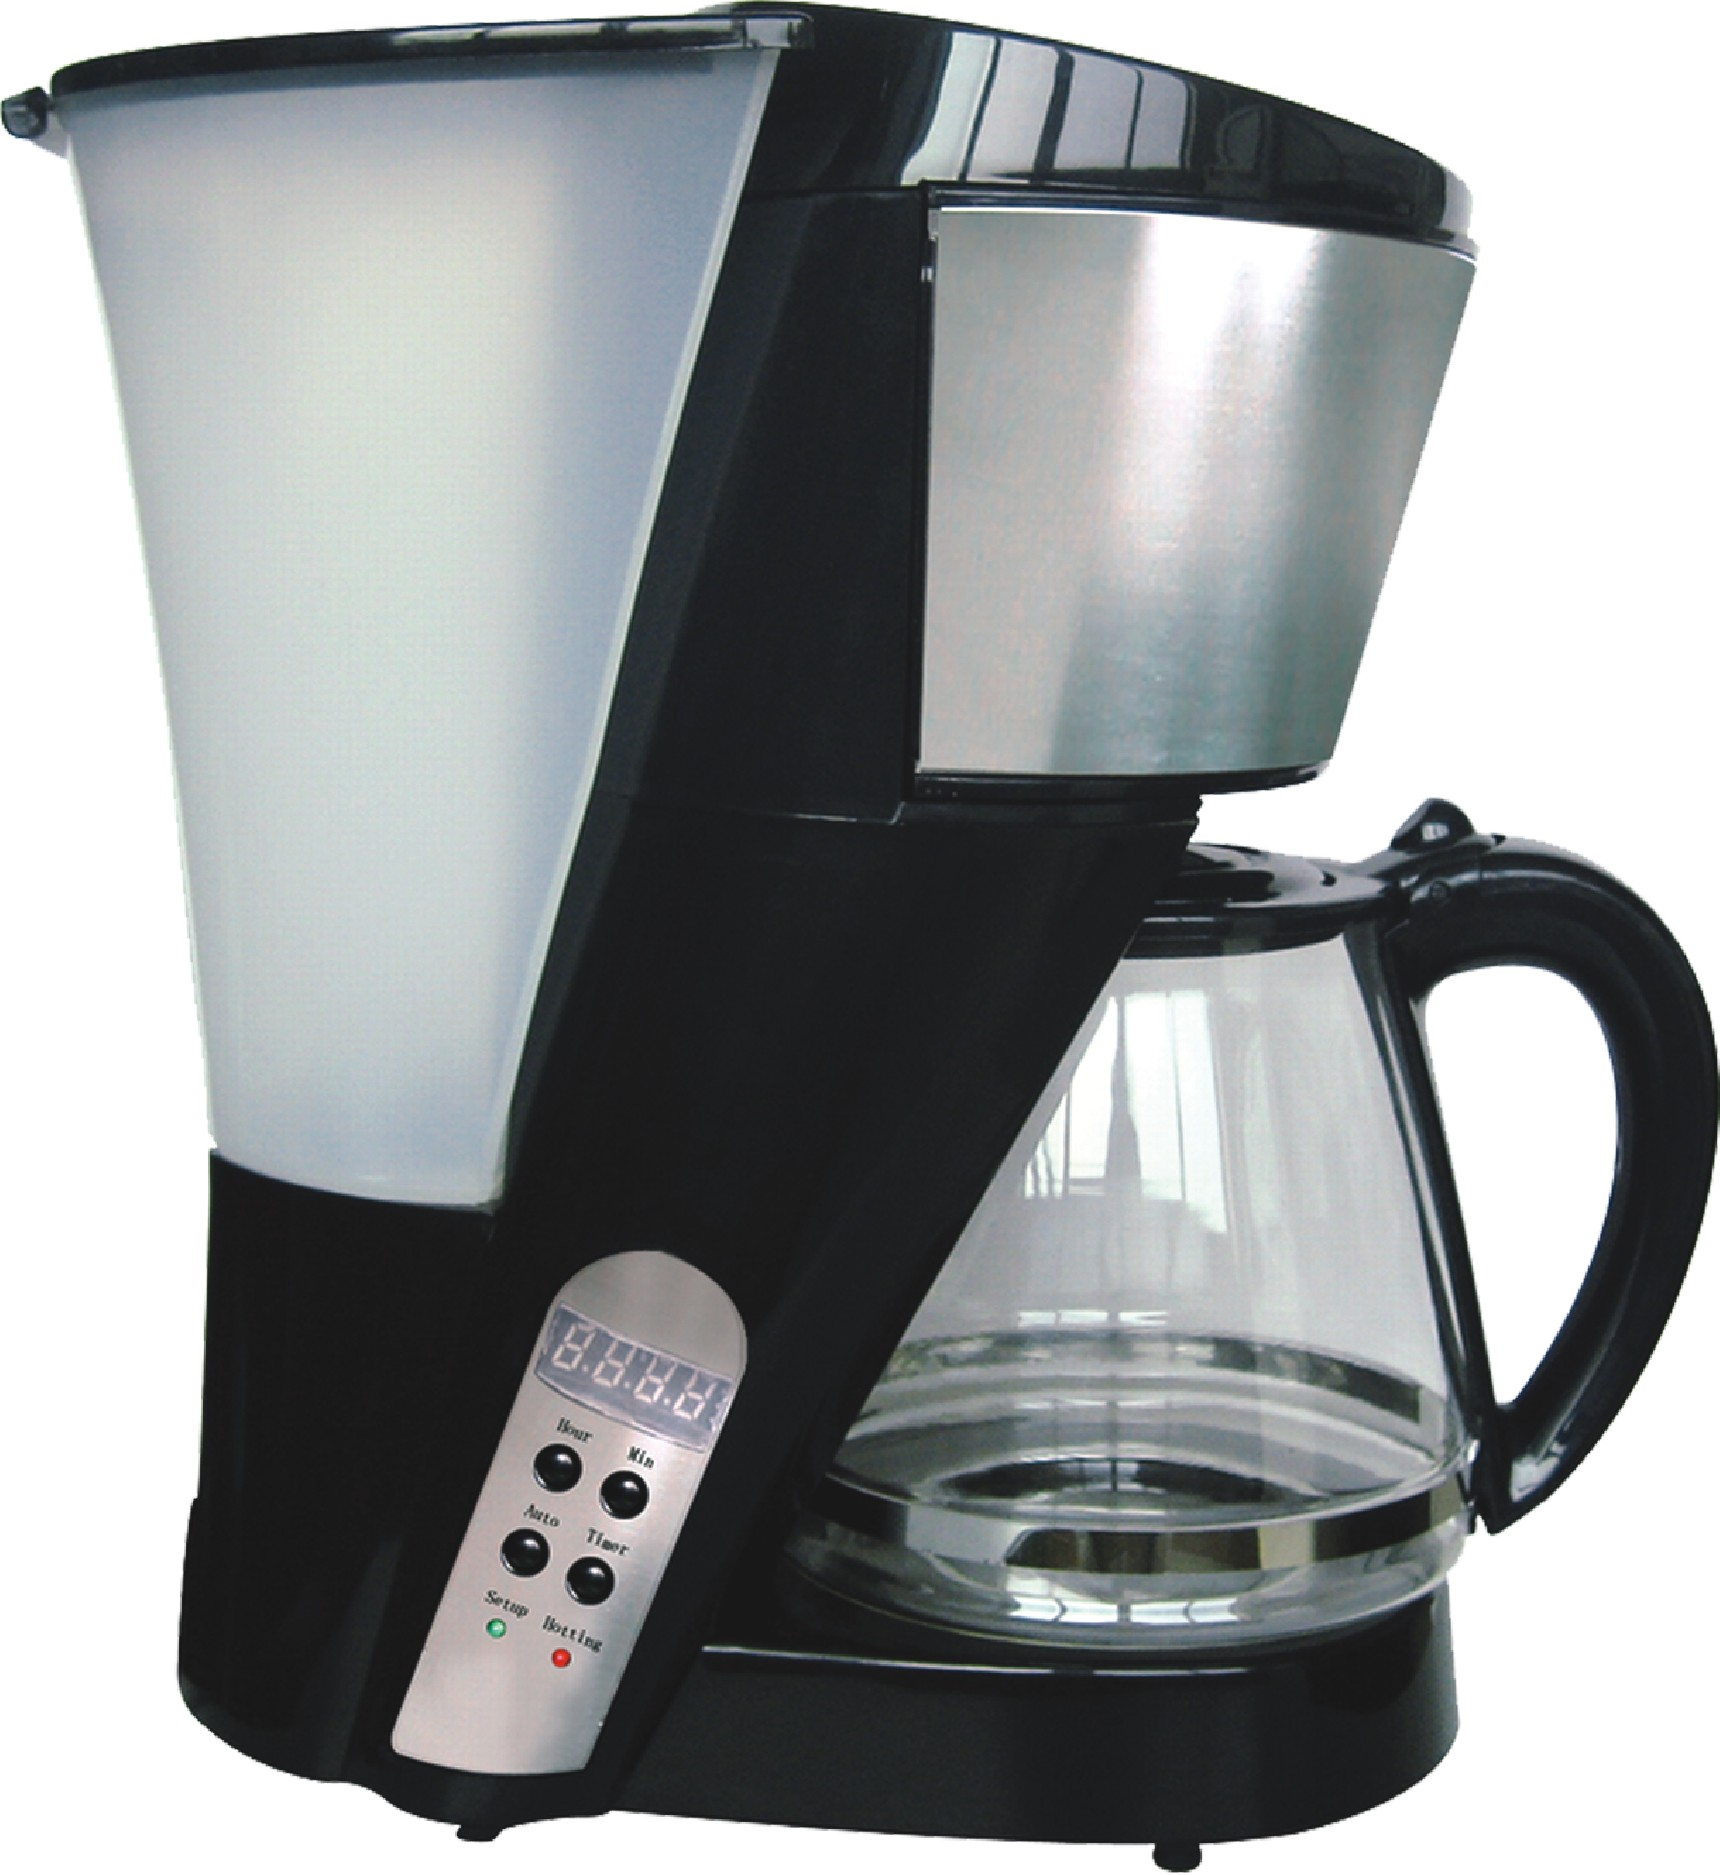 Sunbeam Professional Coffee Maker With Timer (PNUSPC-337) by Sunbeam -  Corporate Gifts .